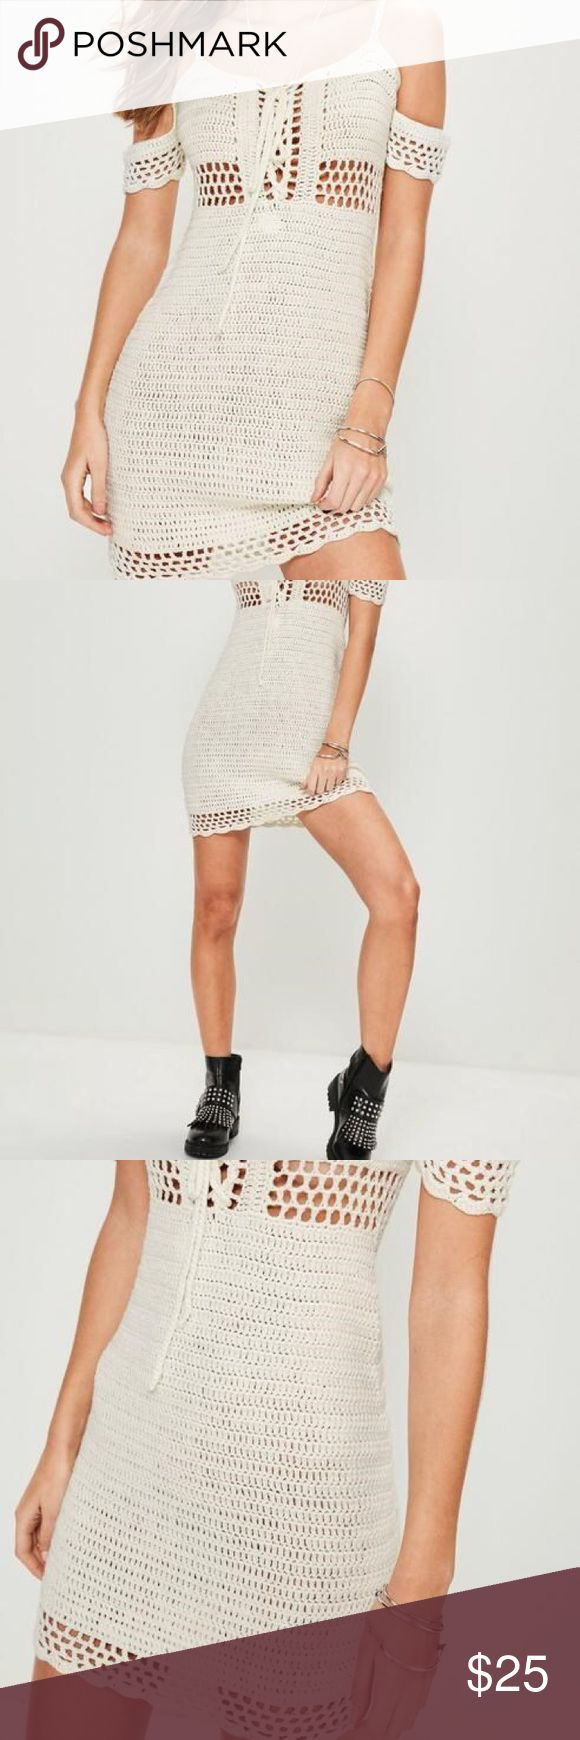 Missguided Cream Supported Bardot Crochet Dress Cream Supported Bardot Crochet Dress .  featuring a crochet fabric, cream hue and bardot style top. It's the perfect festival piece or for a day at the beach. Worn once on vacation, hand washed and clean. No flaws. Missguided Dresses Mini